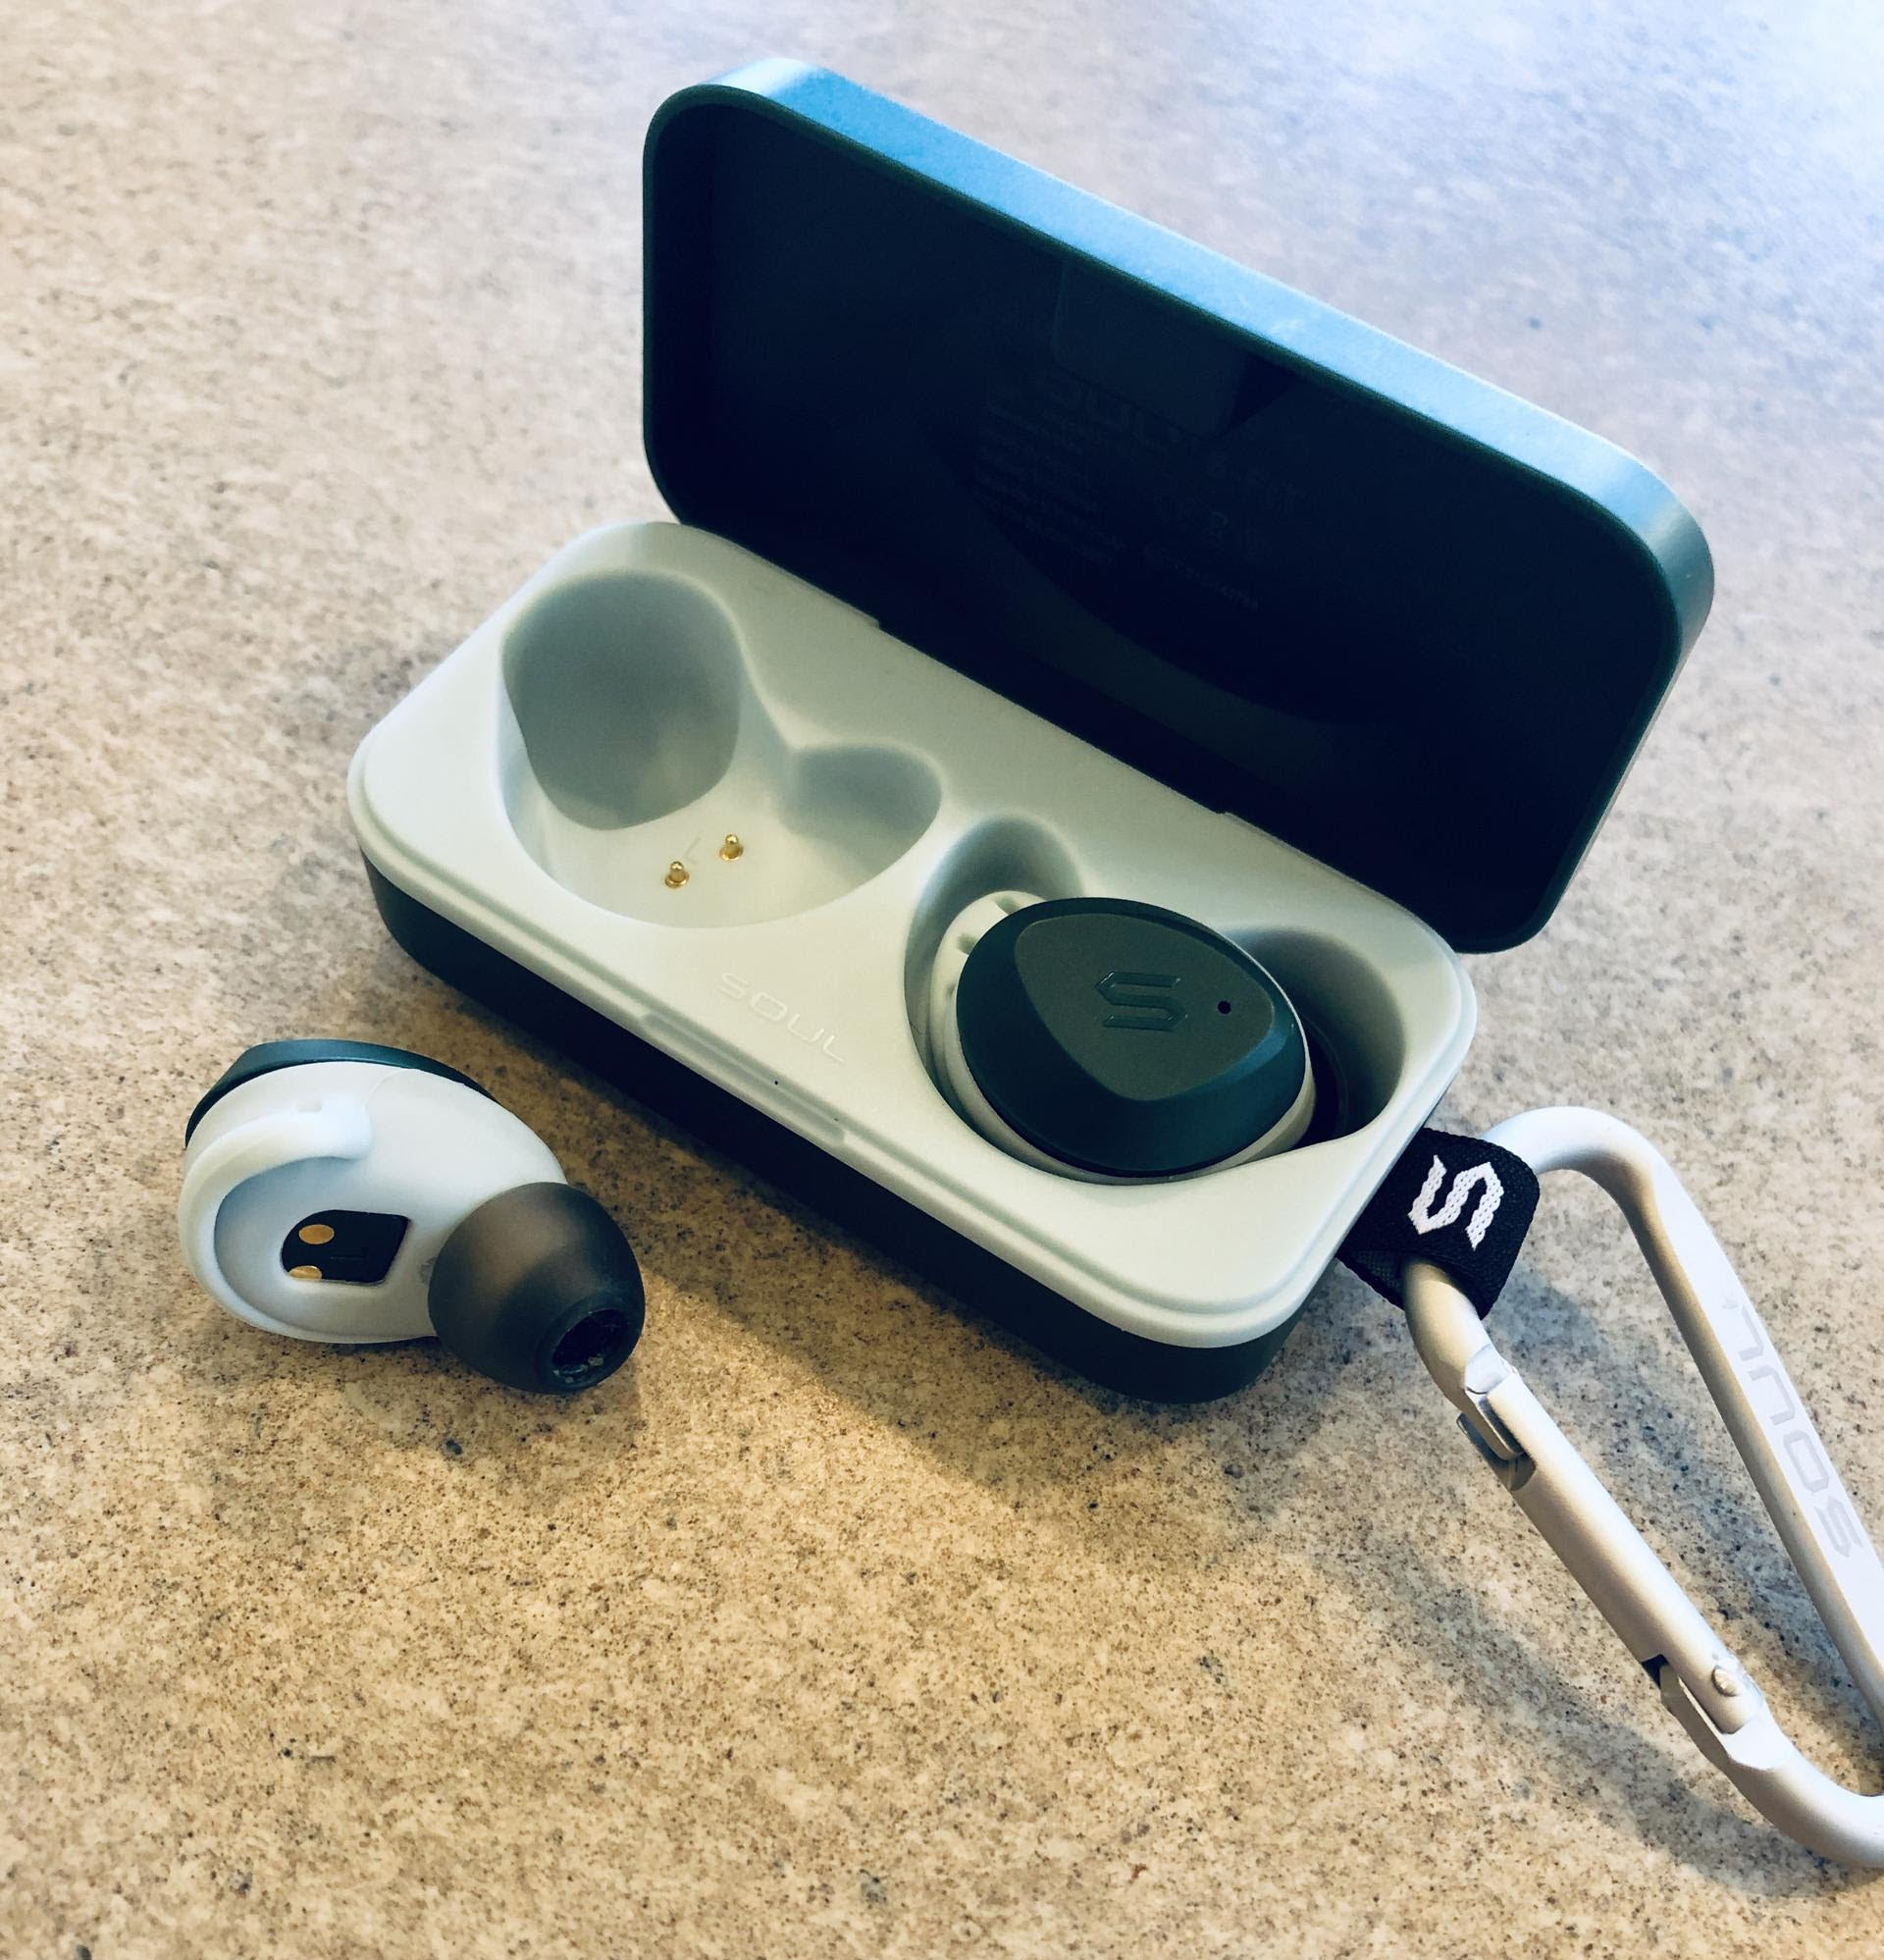 small wireless earbuds in their charging base attached to a carabiner